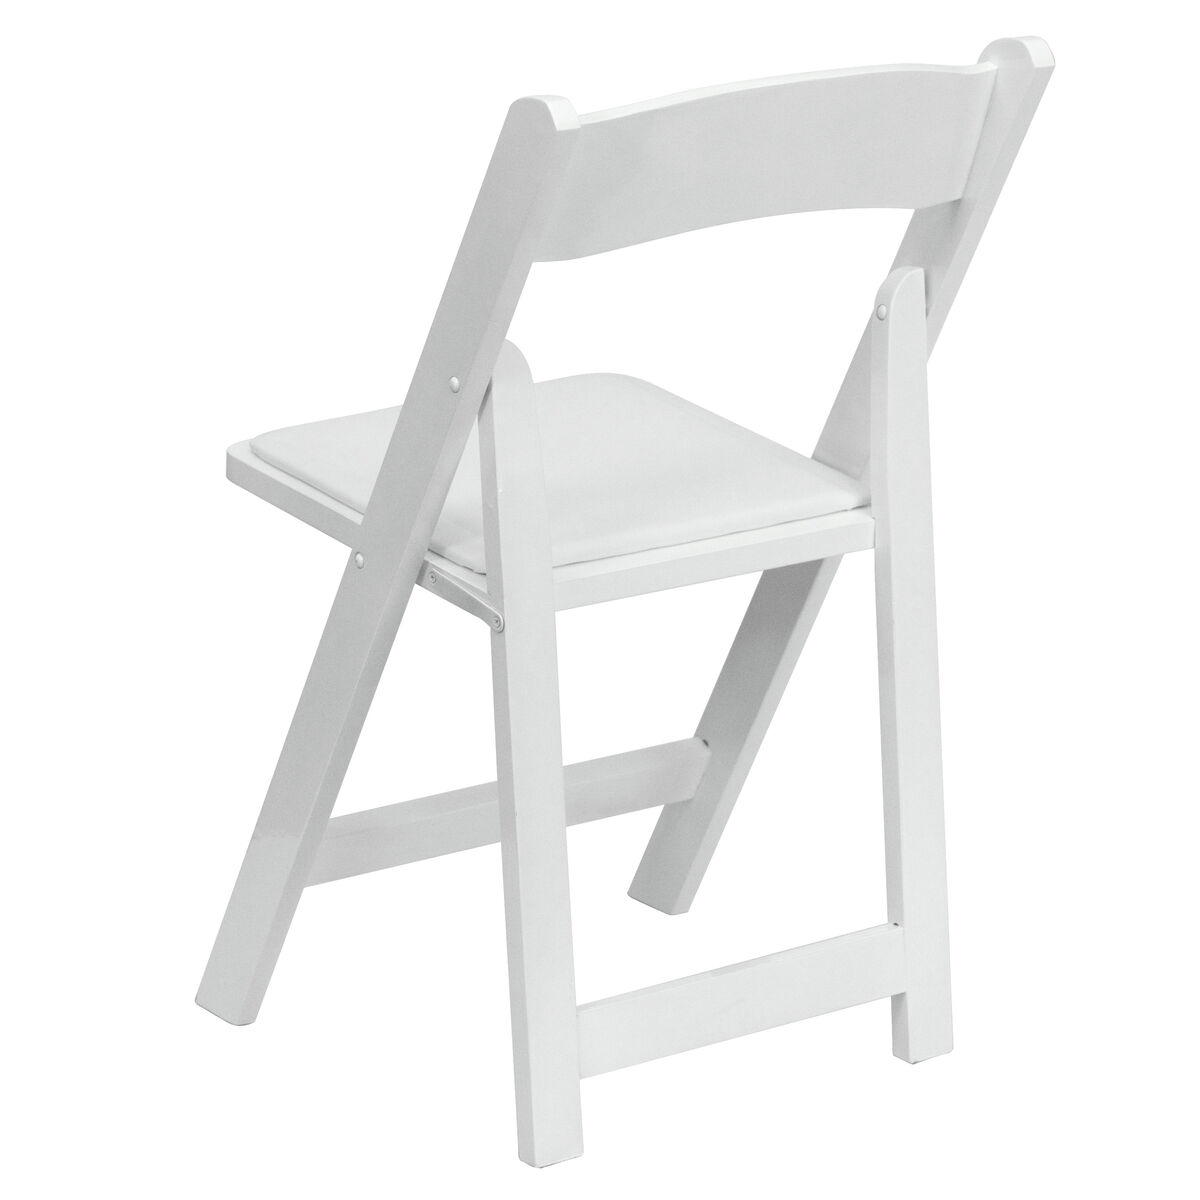 Admirable Hercules Series White Wood Folding Chair With Vinyl Padded Seat Pabps2019 Chair Design Images Pabps2019Com